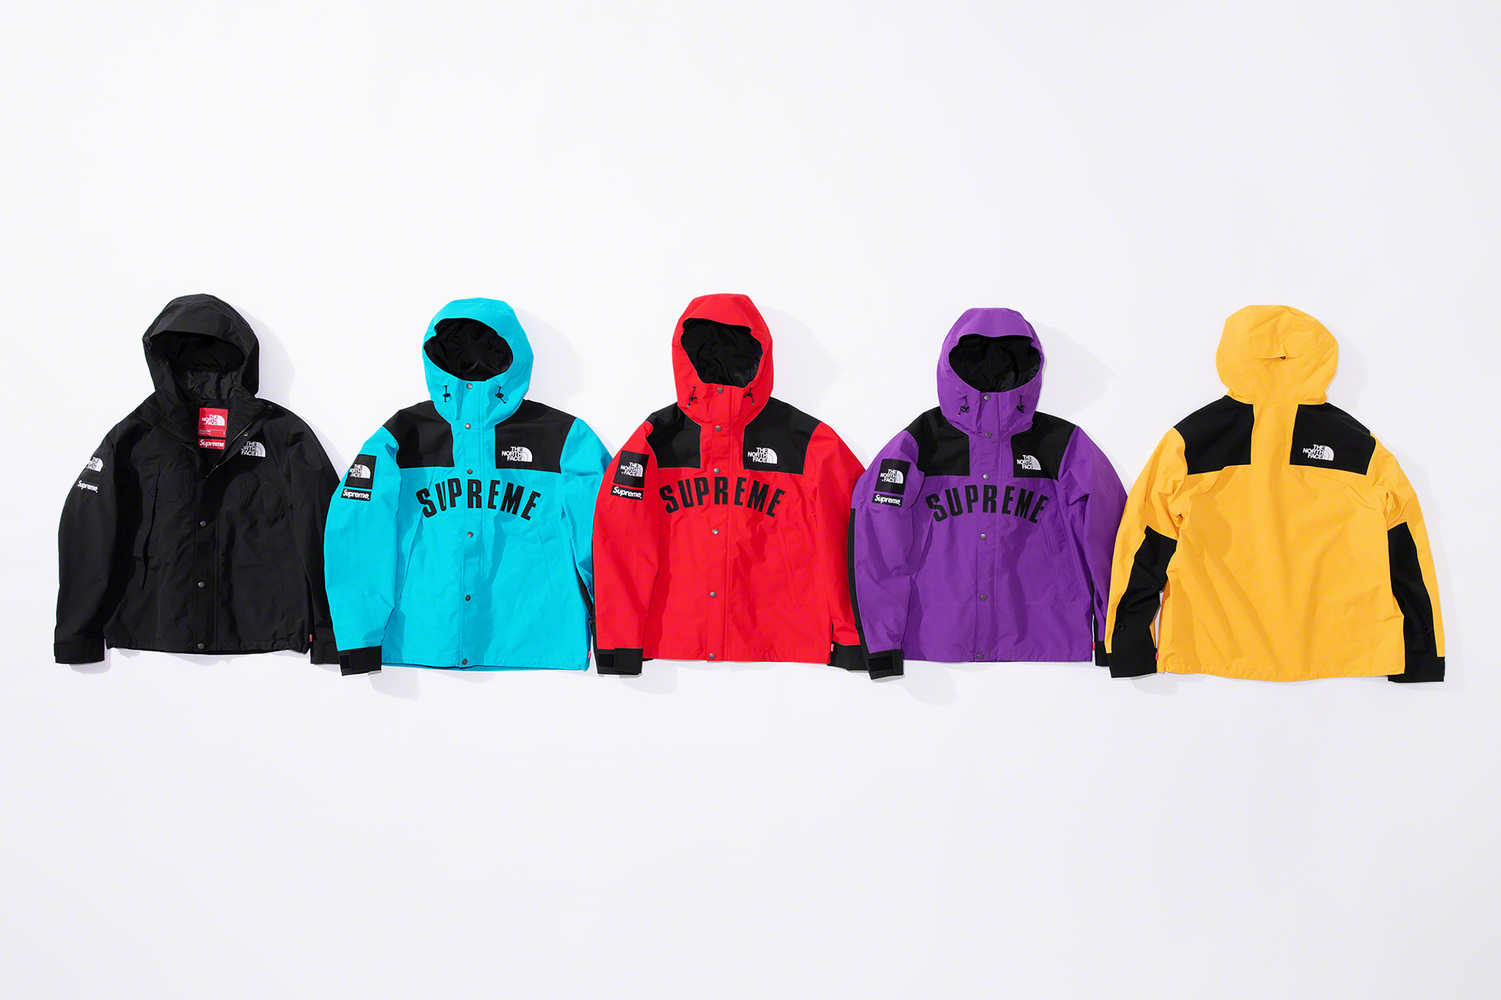 new arrival 2cd22 01529 ᐅ Supreme x The North Face – Spring 2019 | #SNKR◁